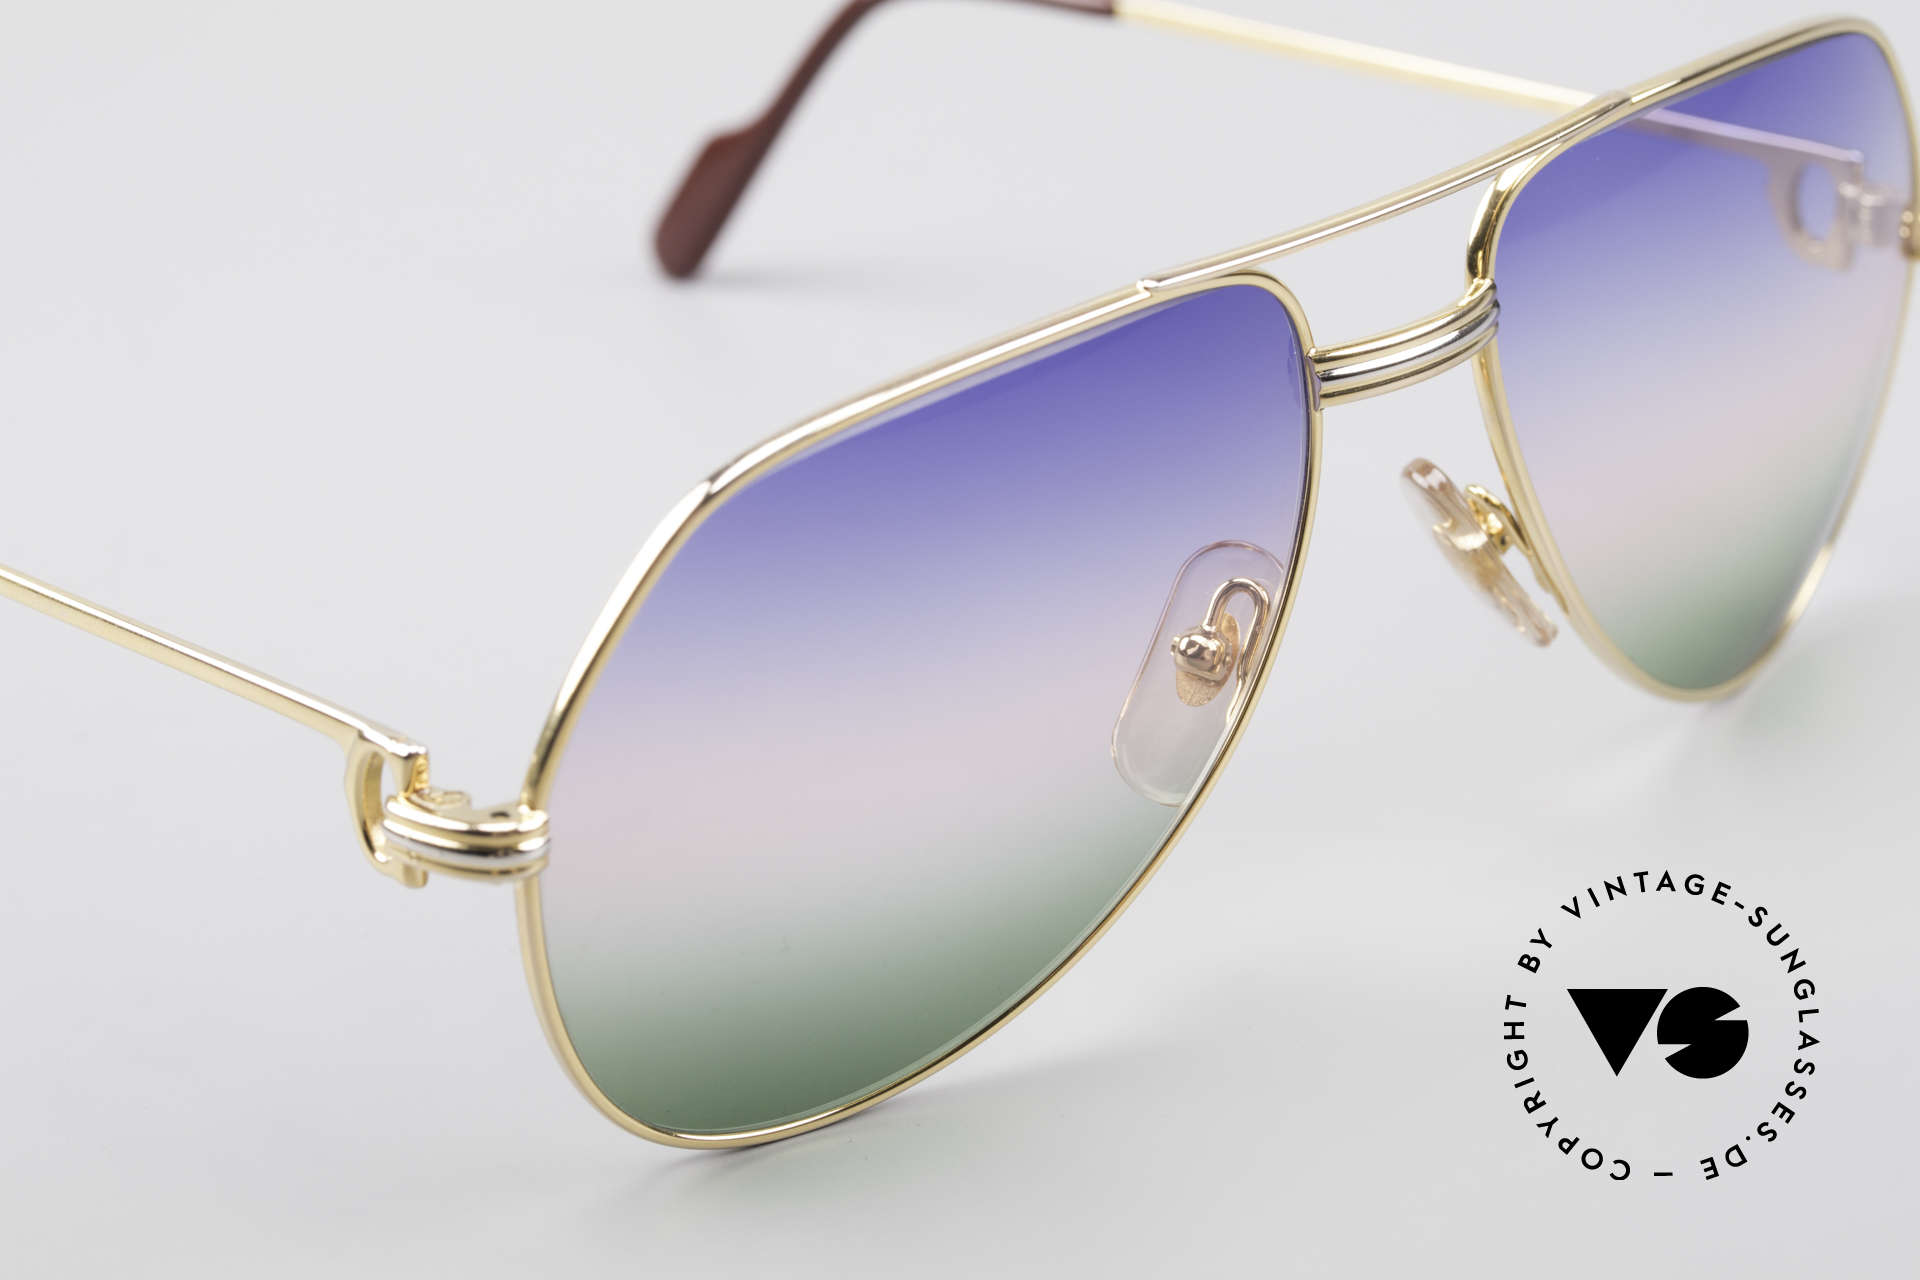 Cartier Vendome LC - M Michael Douglas Sunglasses, 22ct GOLD-plated frame with new tricolored sun lenses, Made for Men